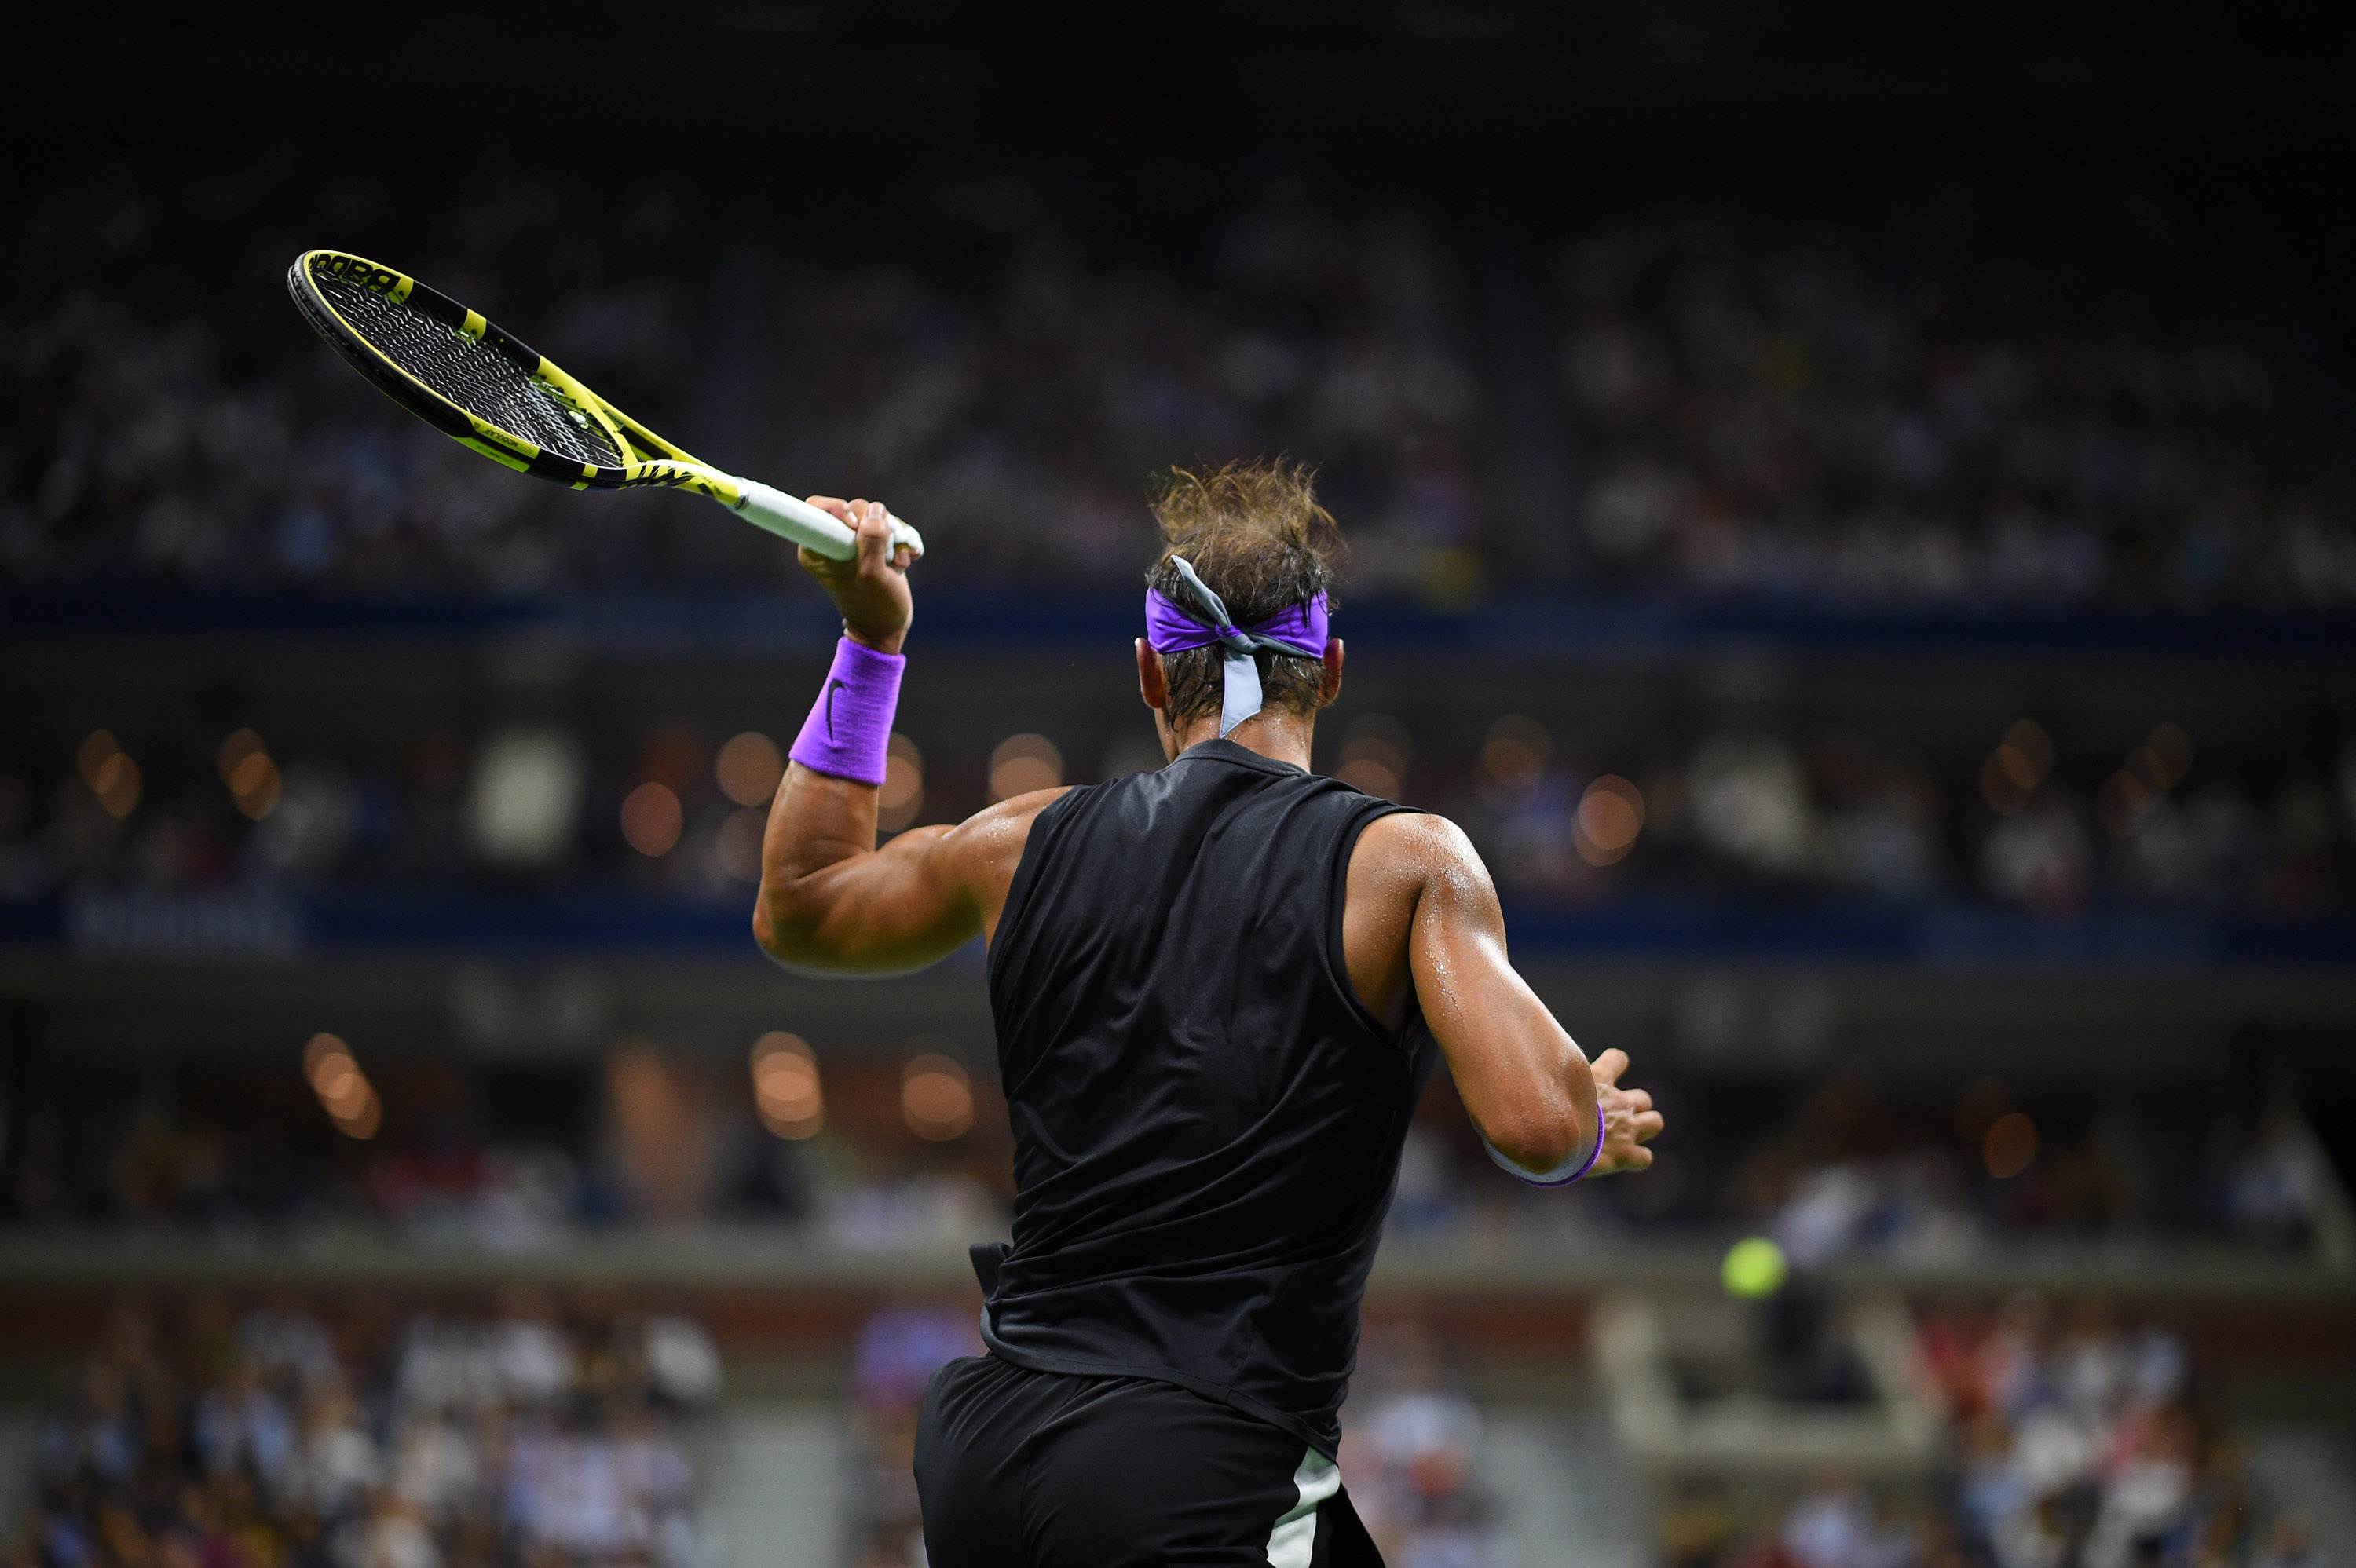 Rafael Nadal's back at the 2019 US Open